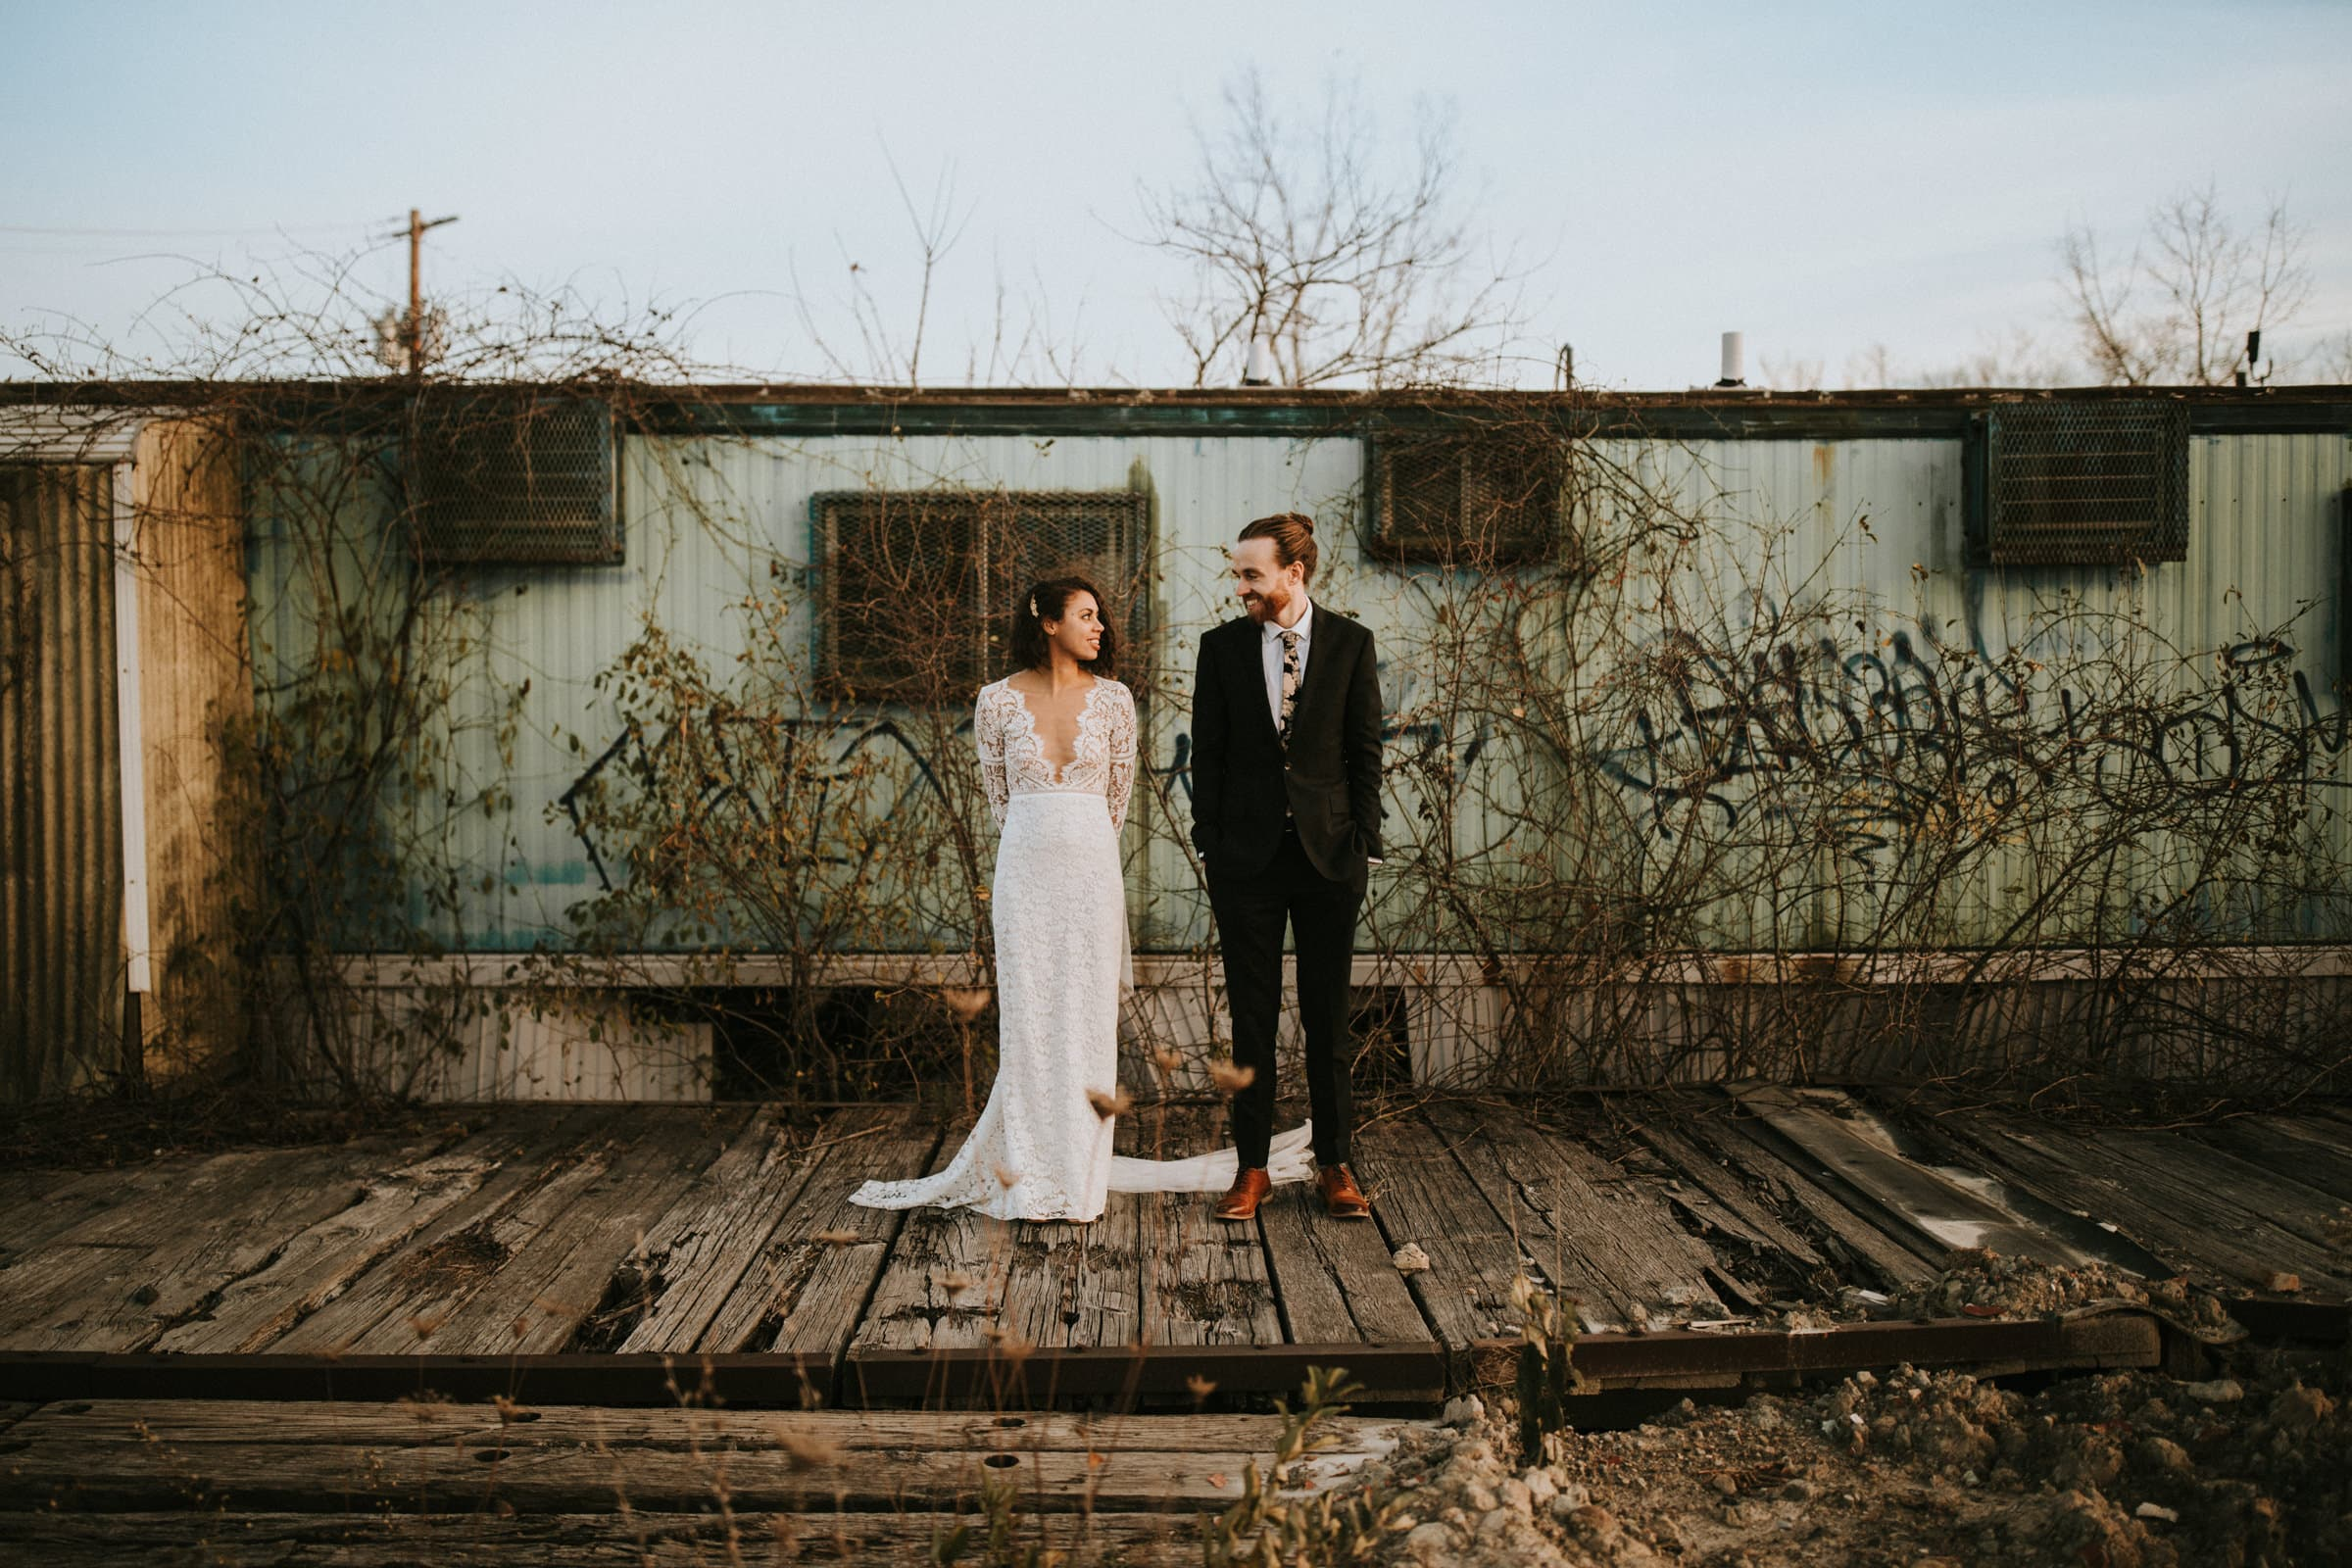 A wedding couple is standing on old tram tracks , in front of an old rustic building.